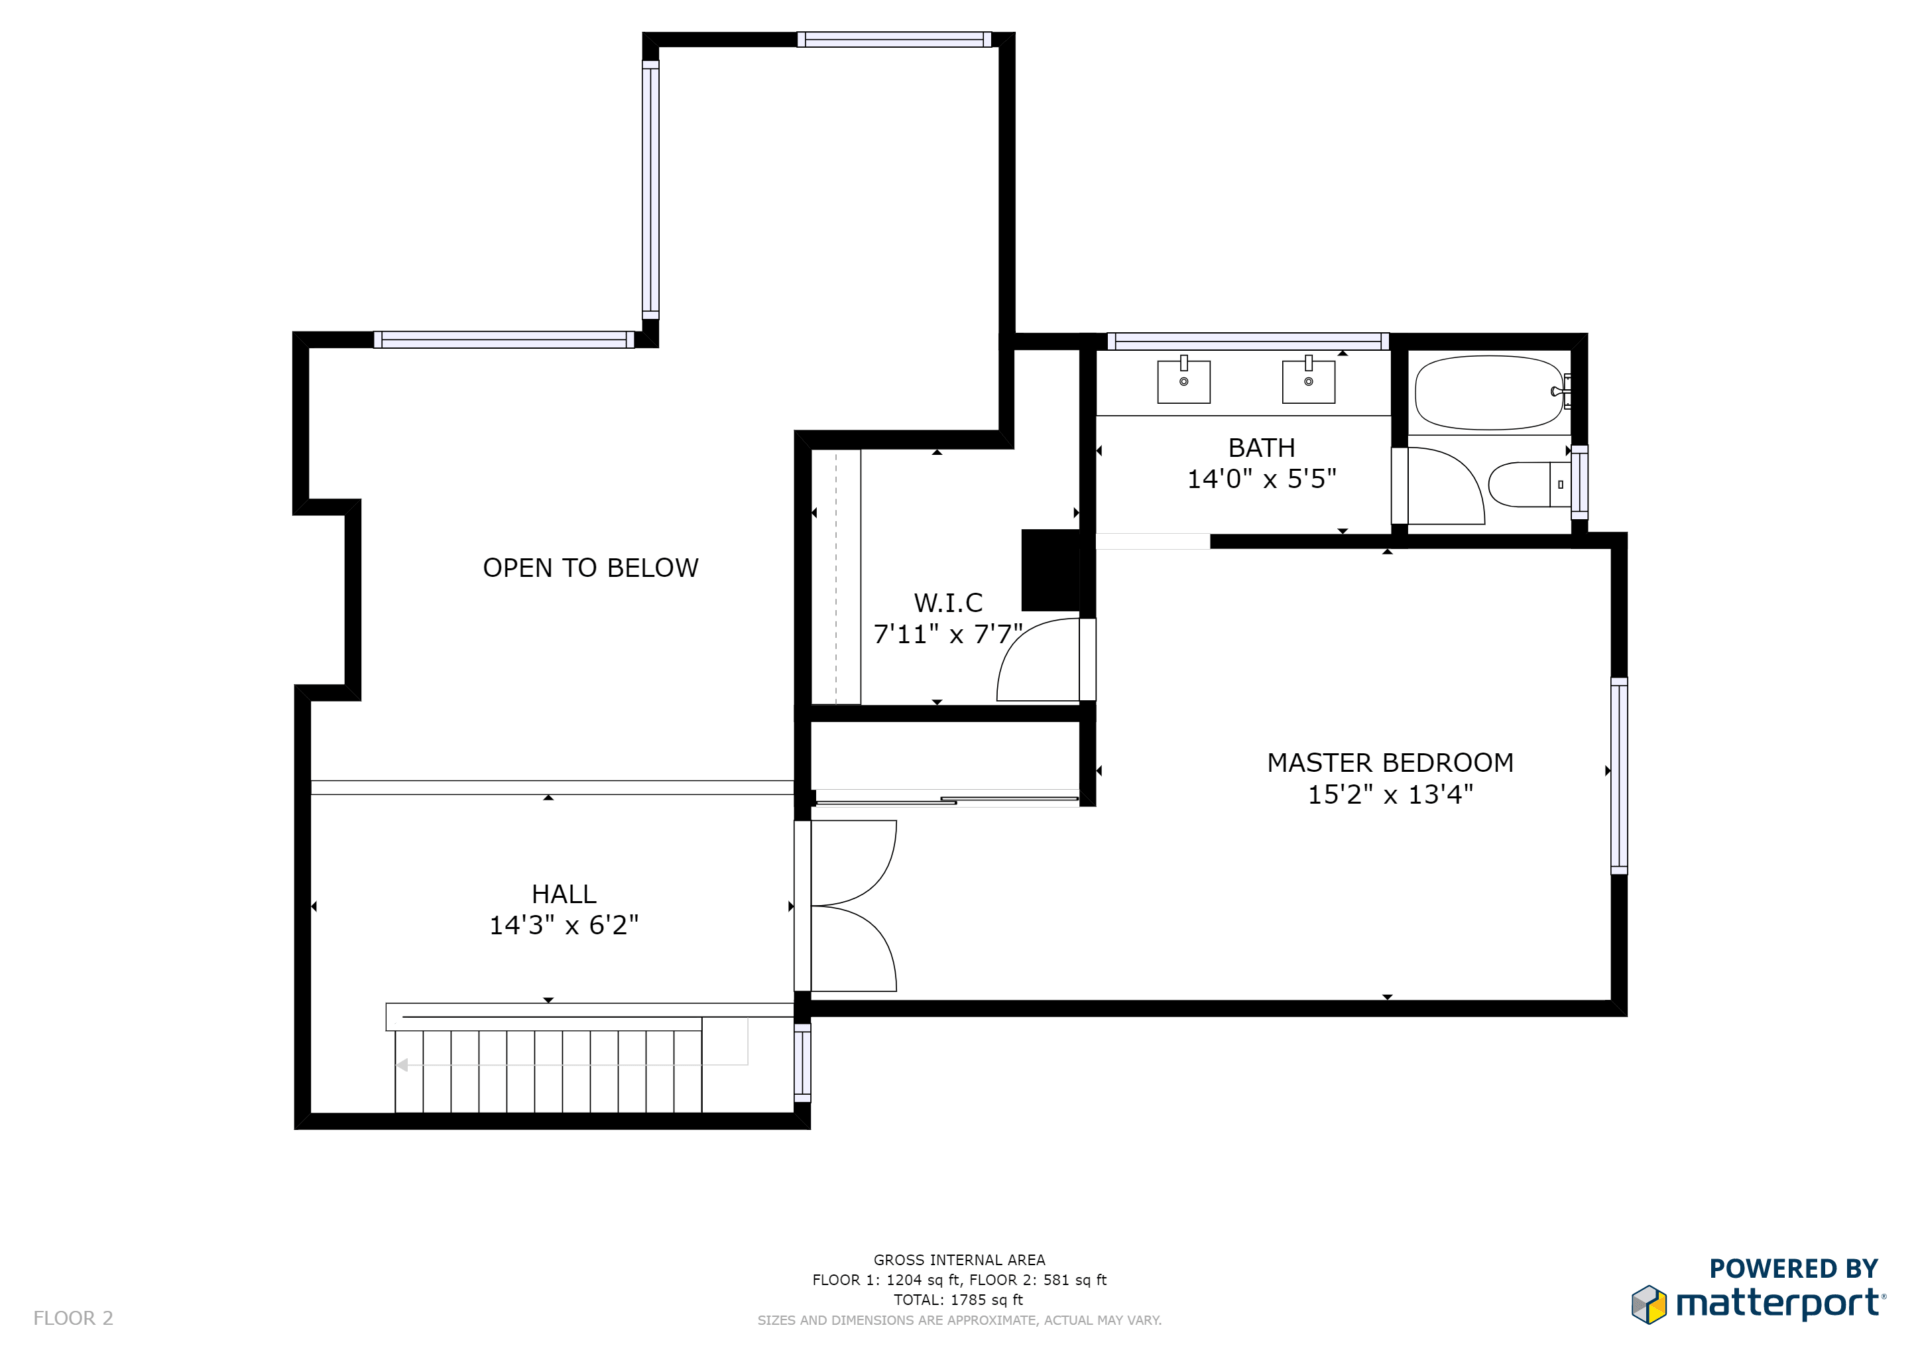 hight resolution of listed by redfin 1963 rock st unit 26 mountain view schematic floor plan floor 2